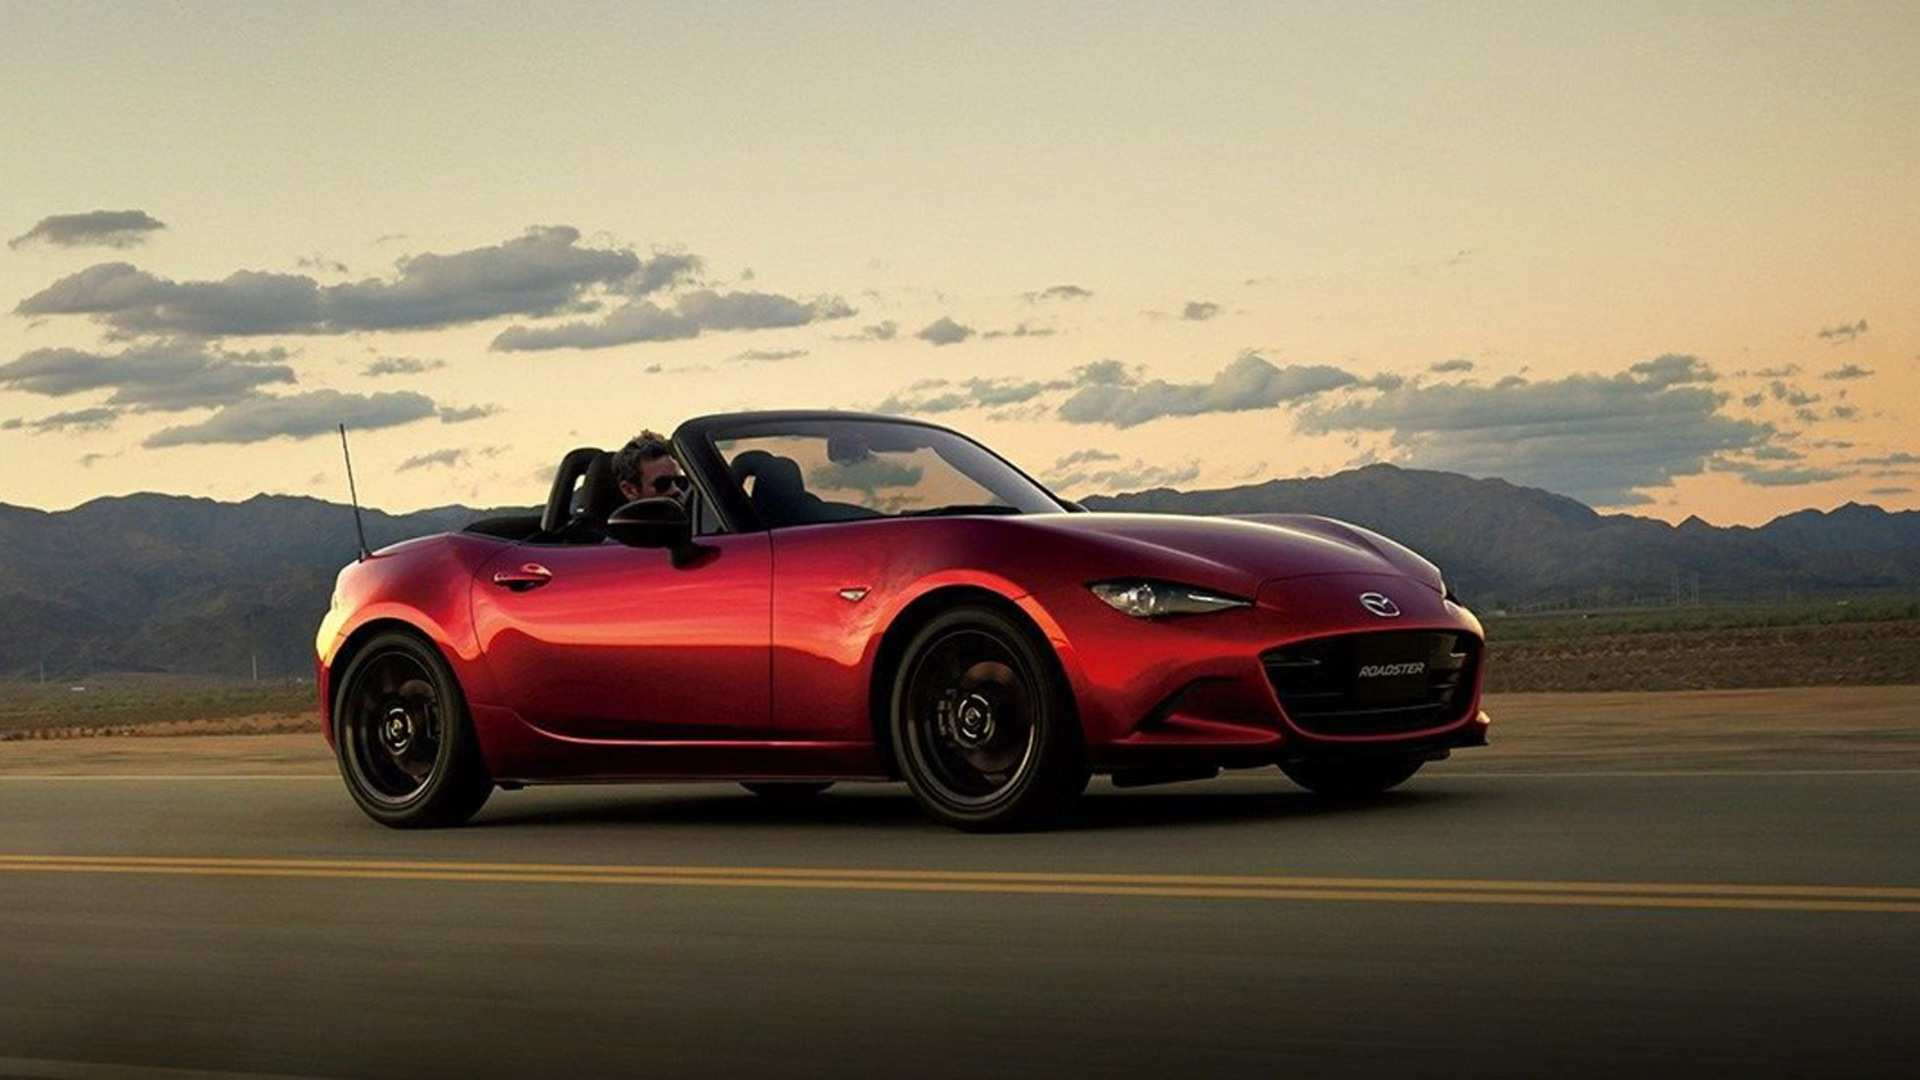 59 All New Mazda Mx 5 2019 Specs New Concept